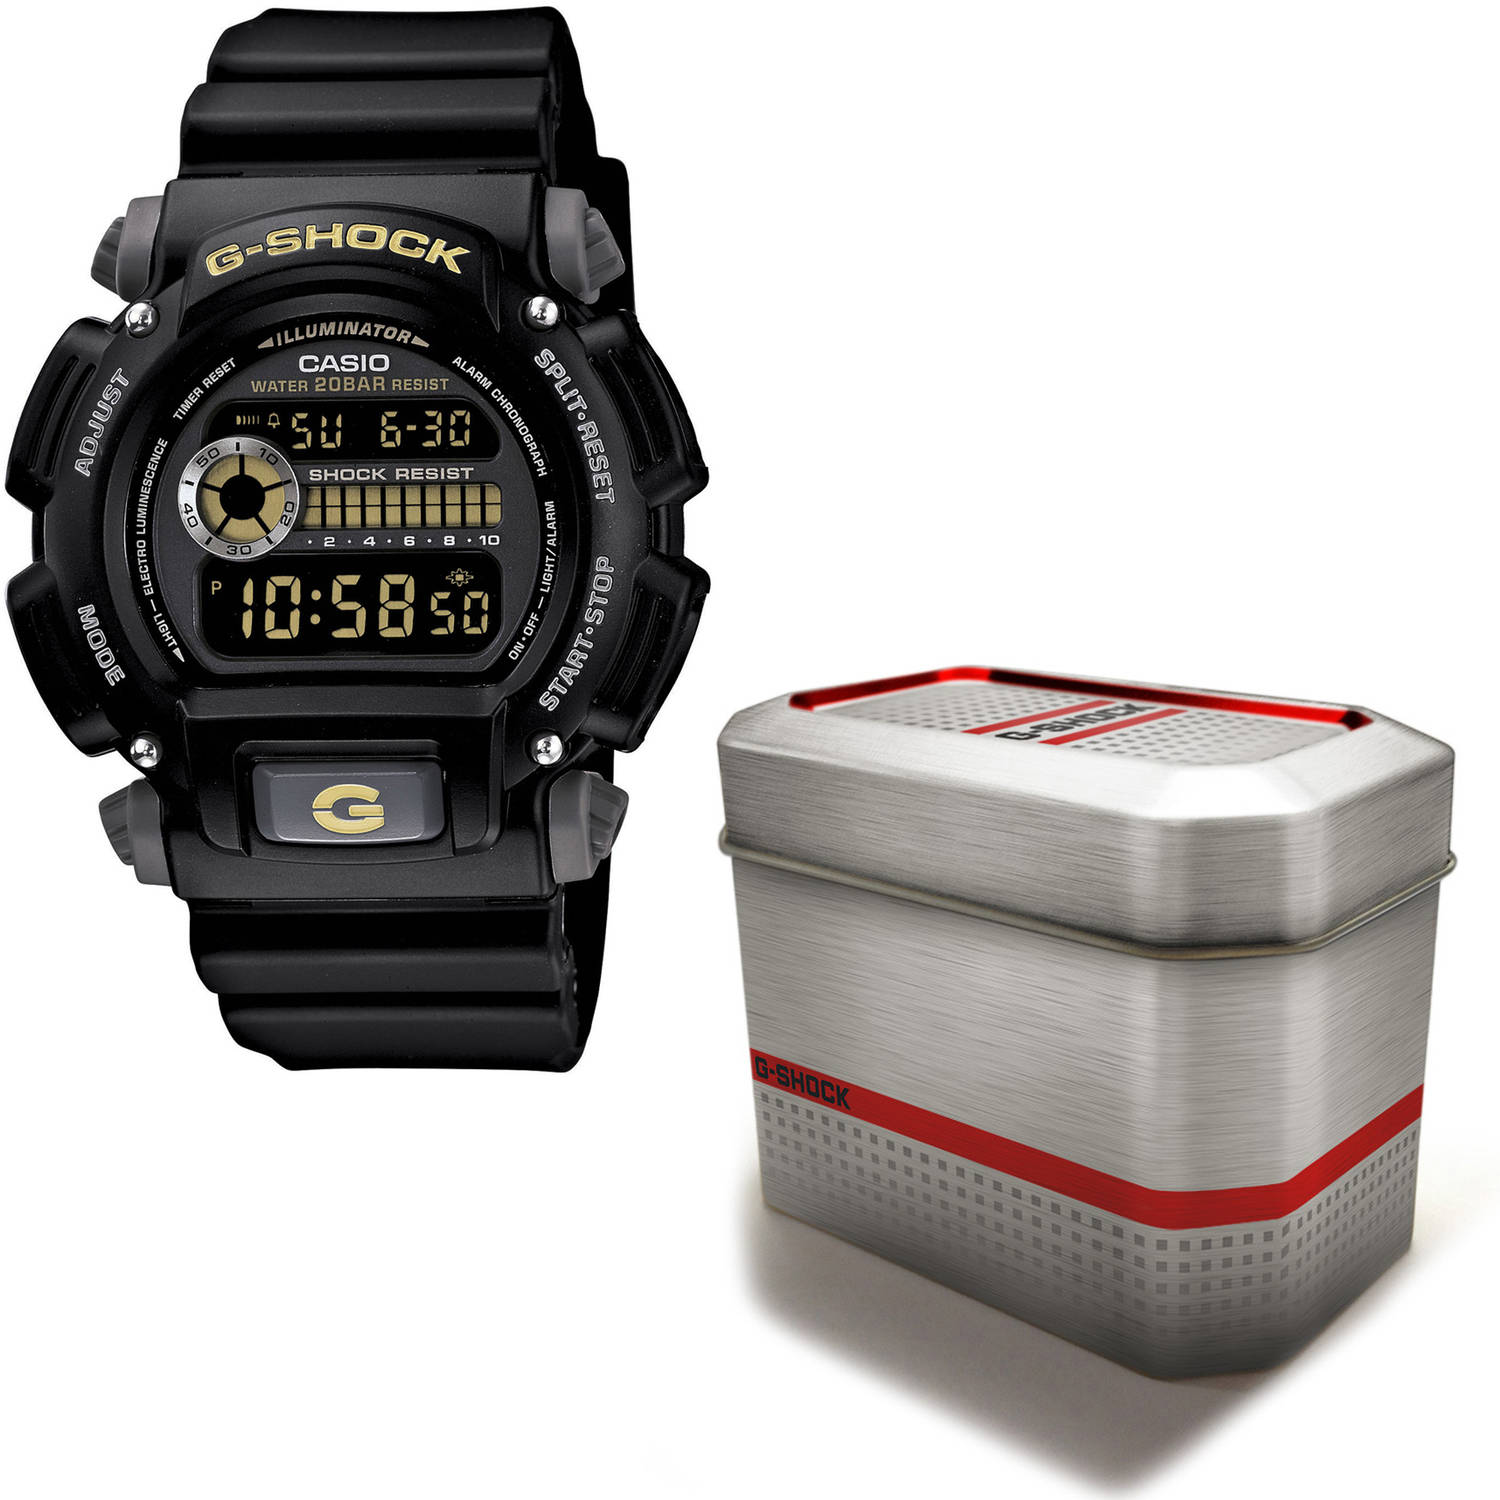 Casio Men's G-Shock Watch with Reusable Gift Tin, Black Dial and Resin Strap